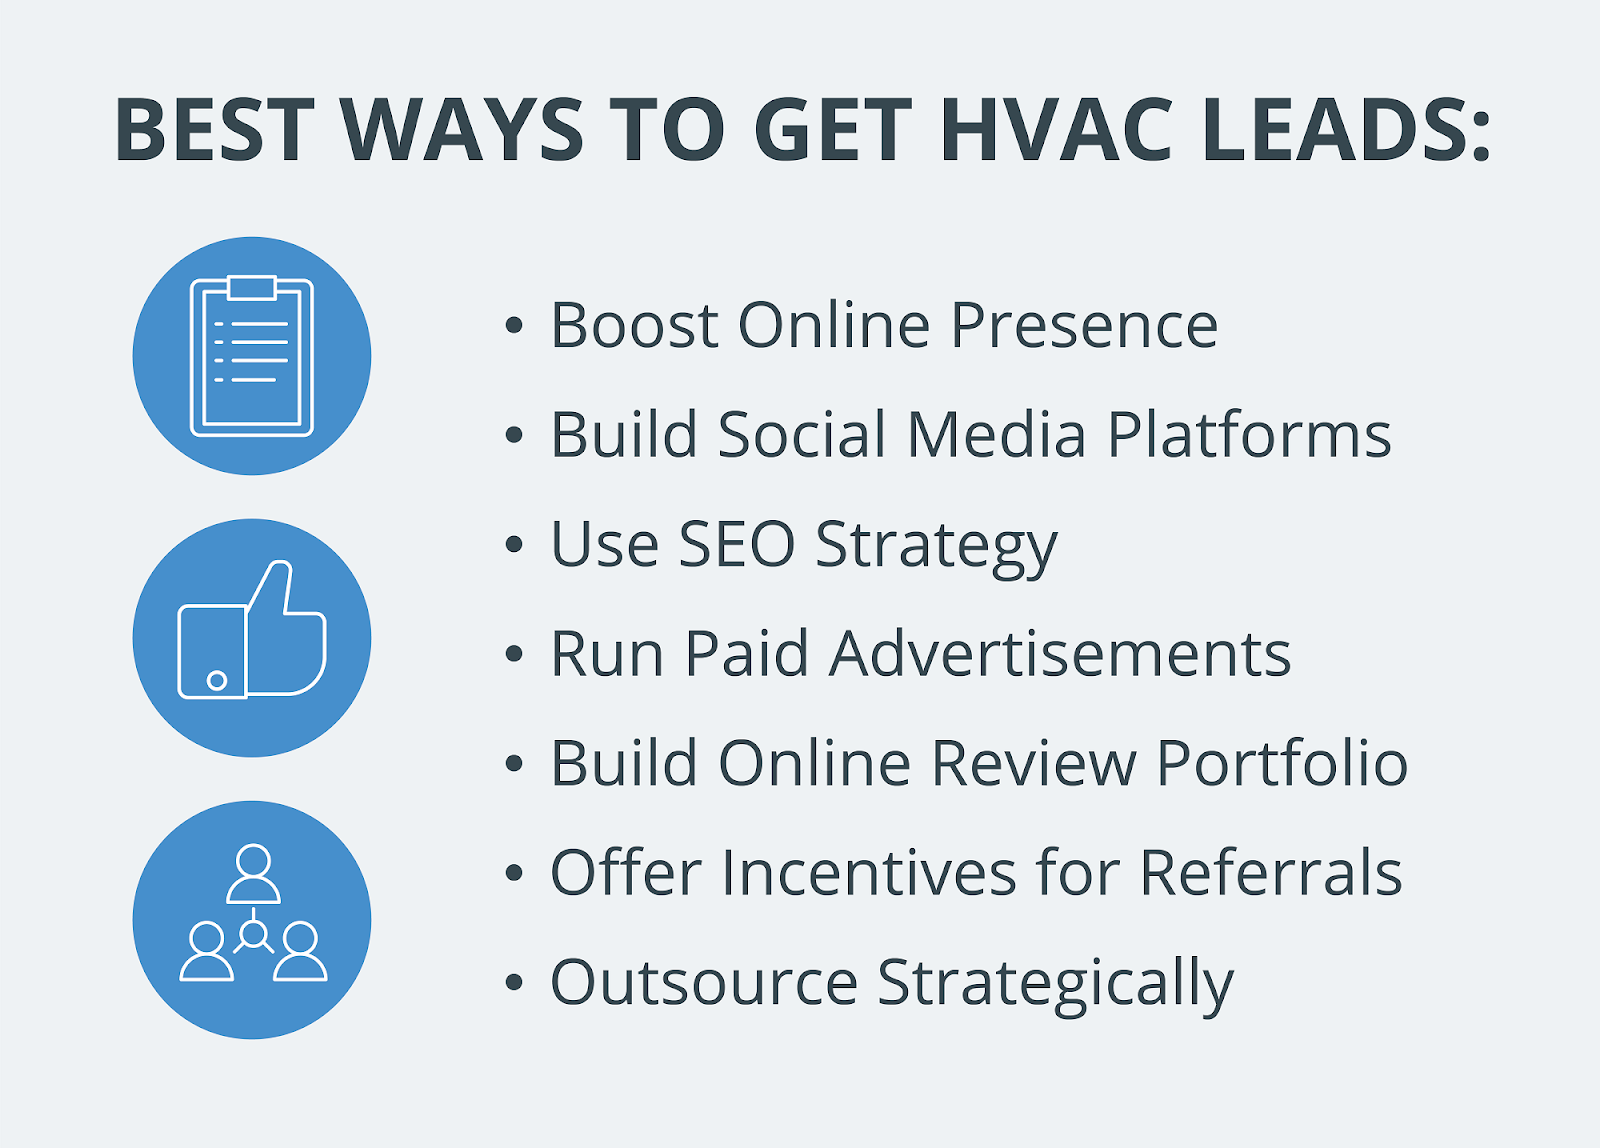 Best ways to get HVAC leads